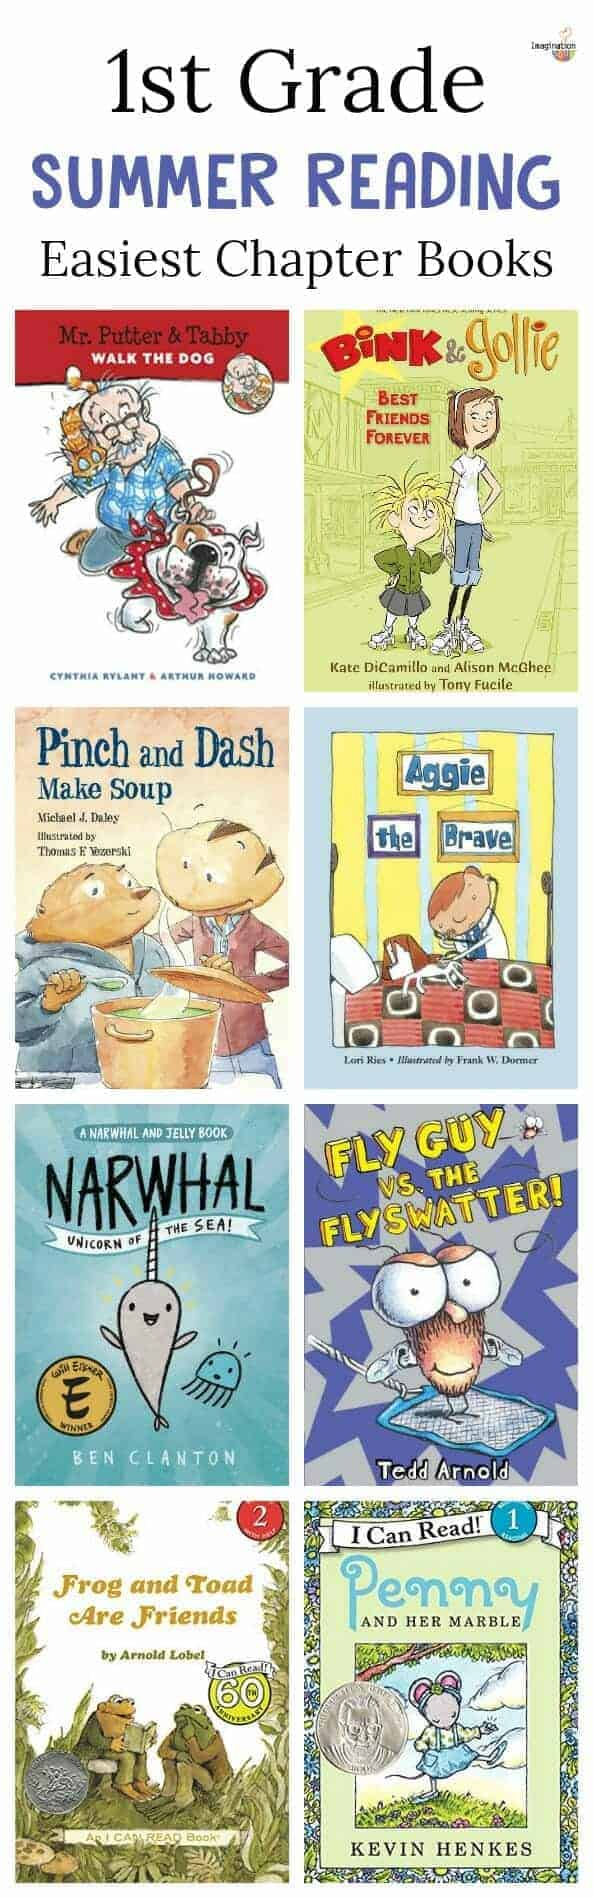 for kids going into 1st grade - a summer reading list of easiest chapter books